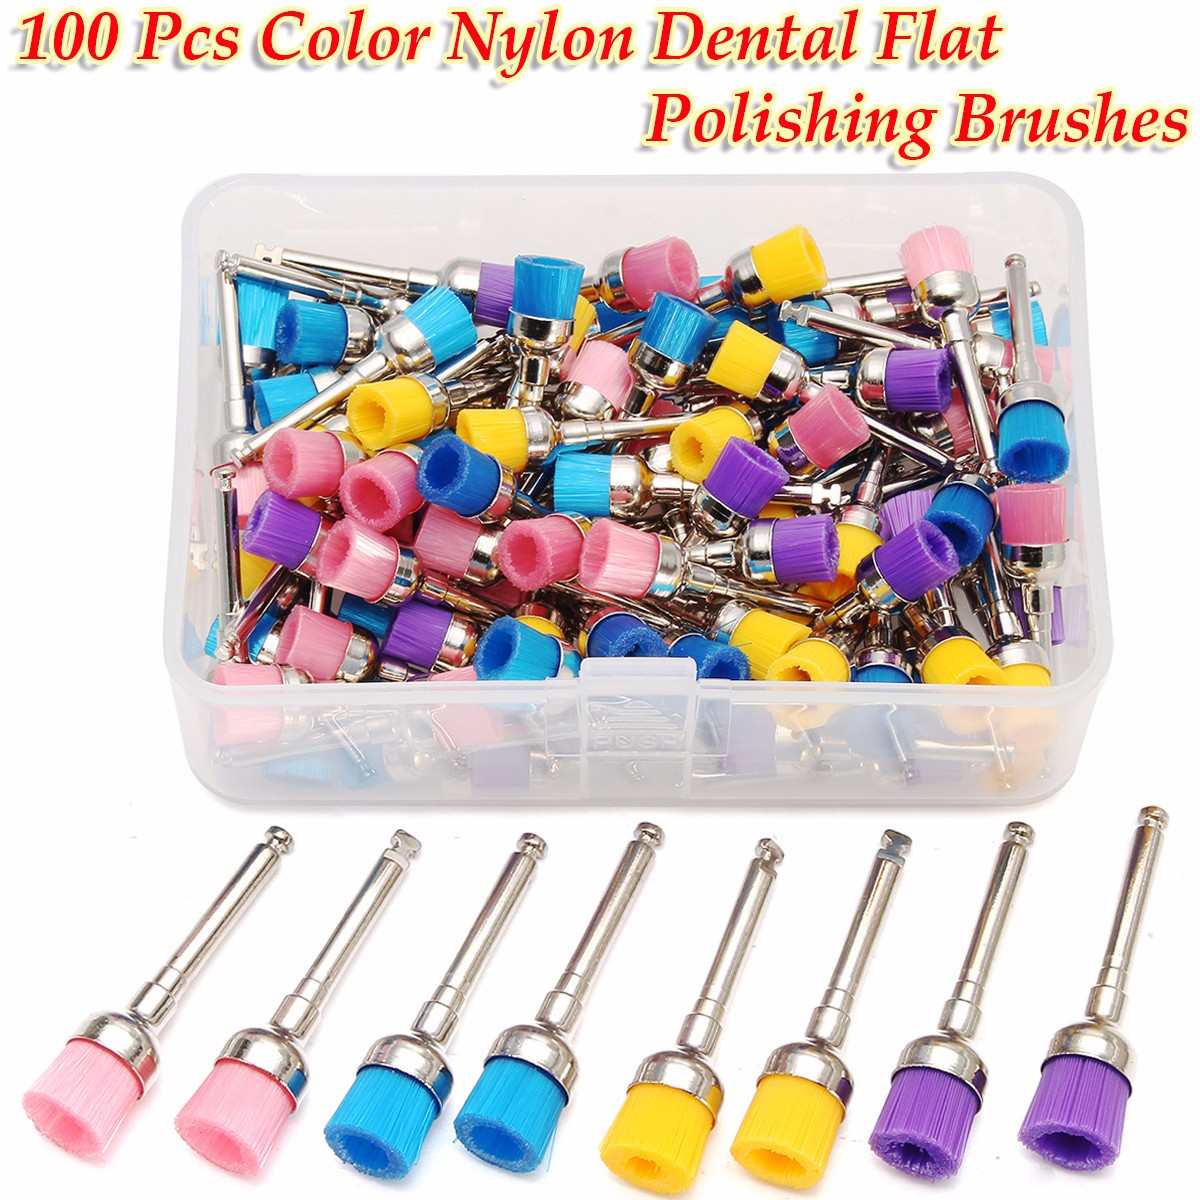 100Pcs/bag Dental Lab Nylon Latch Small Flat Polishing Polisher Prophylaxis Brushes Dentist Products 0.7cm Brush Head with Box prophylaxis paste mint flavor dental product